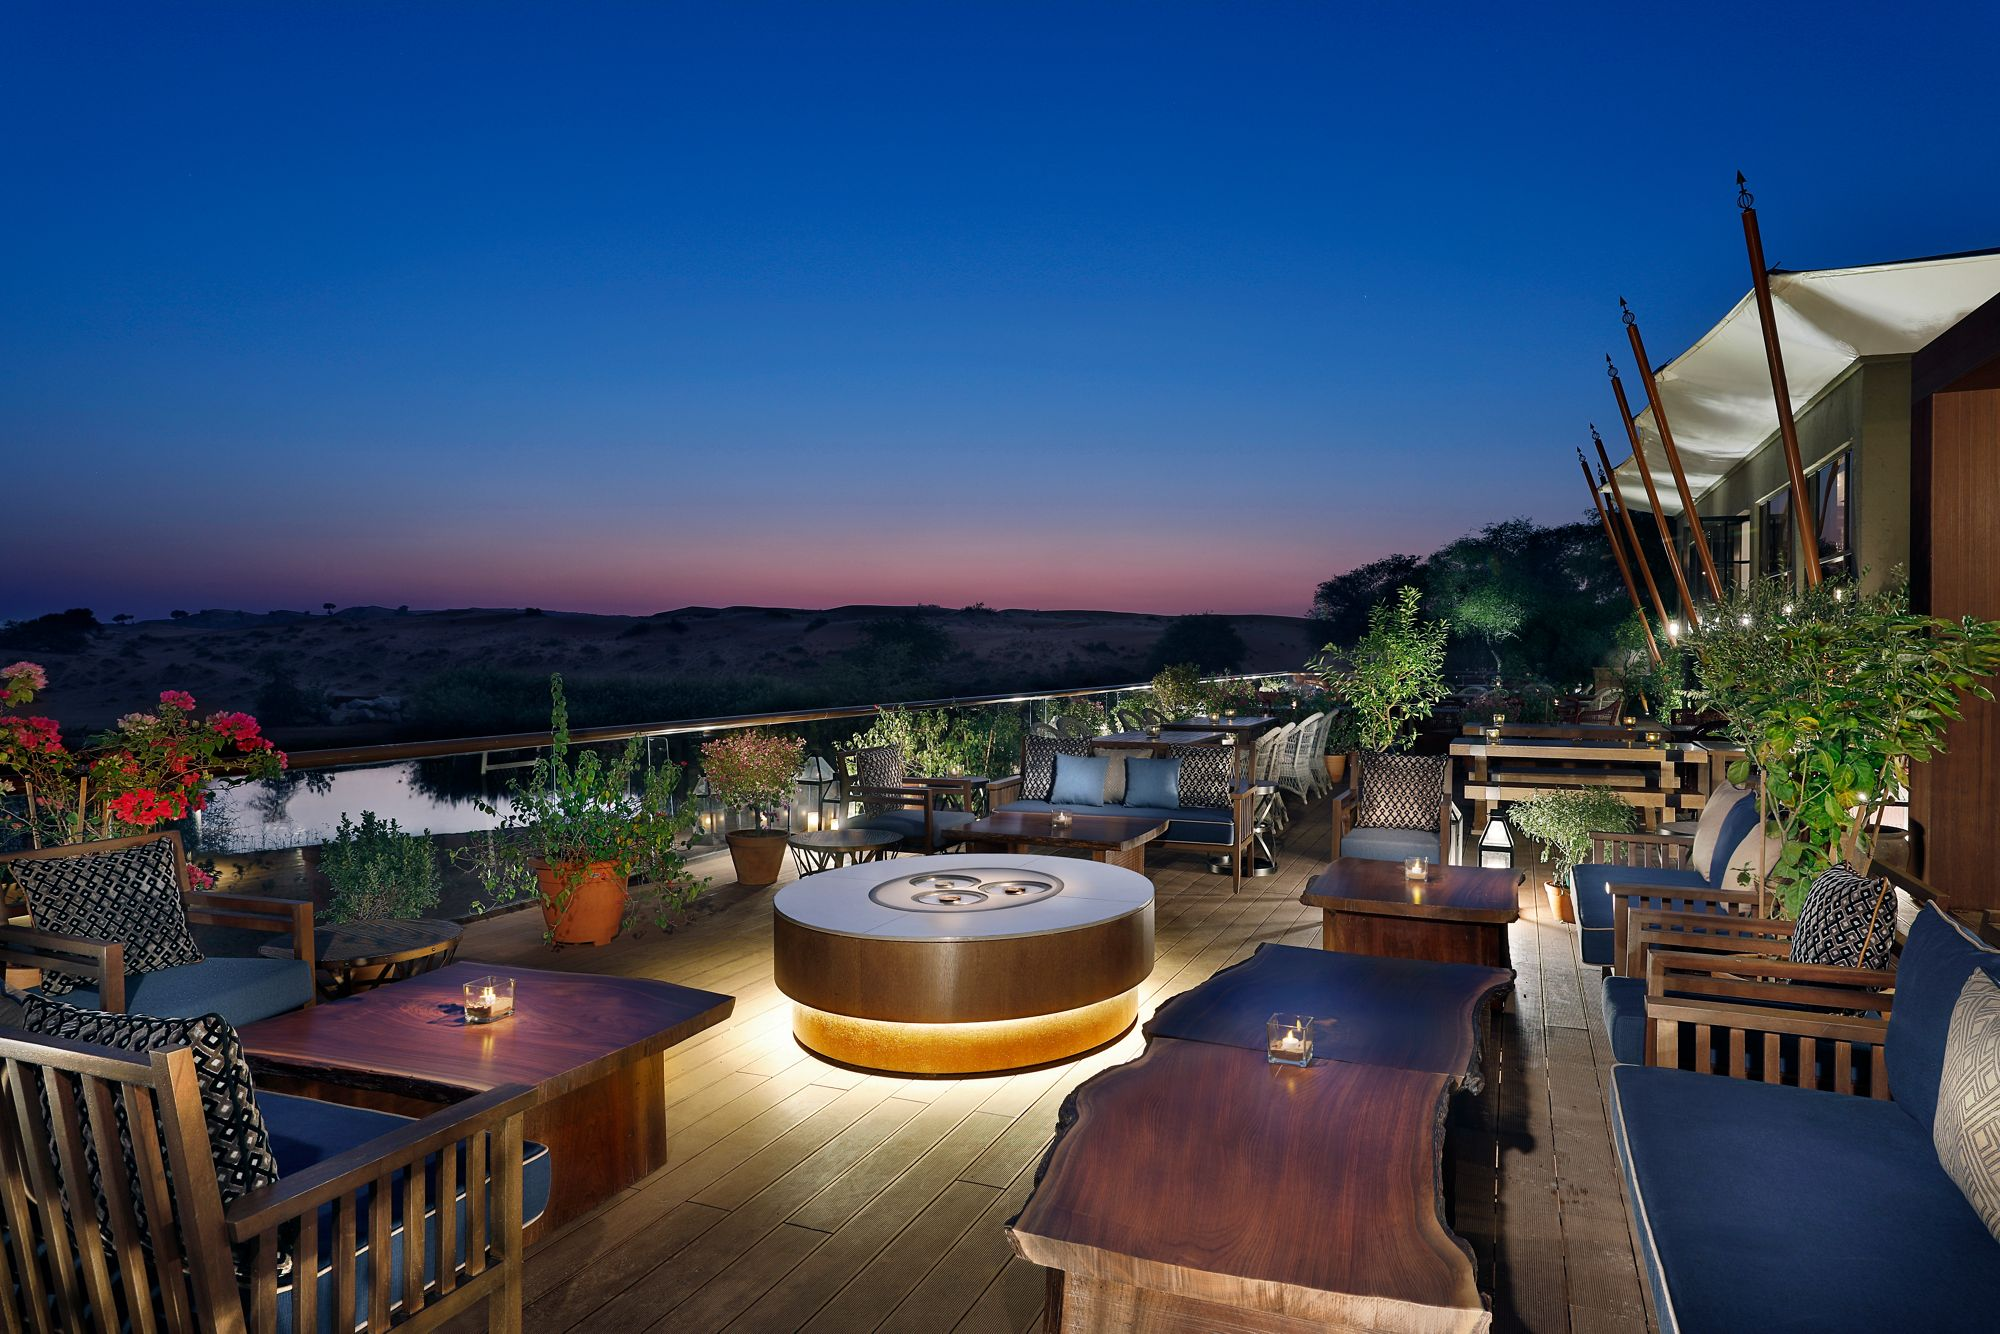 ritz-carlton-al-wadi-dining-terrace